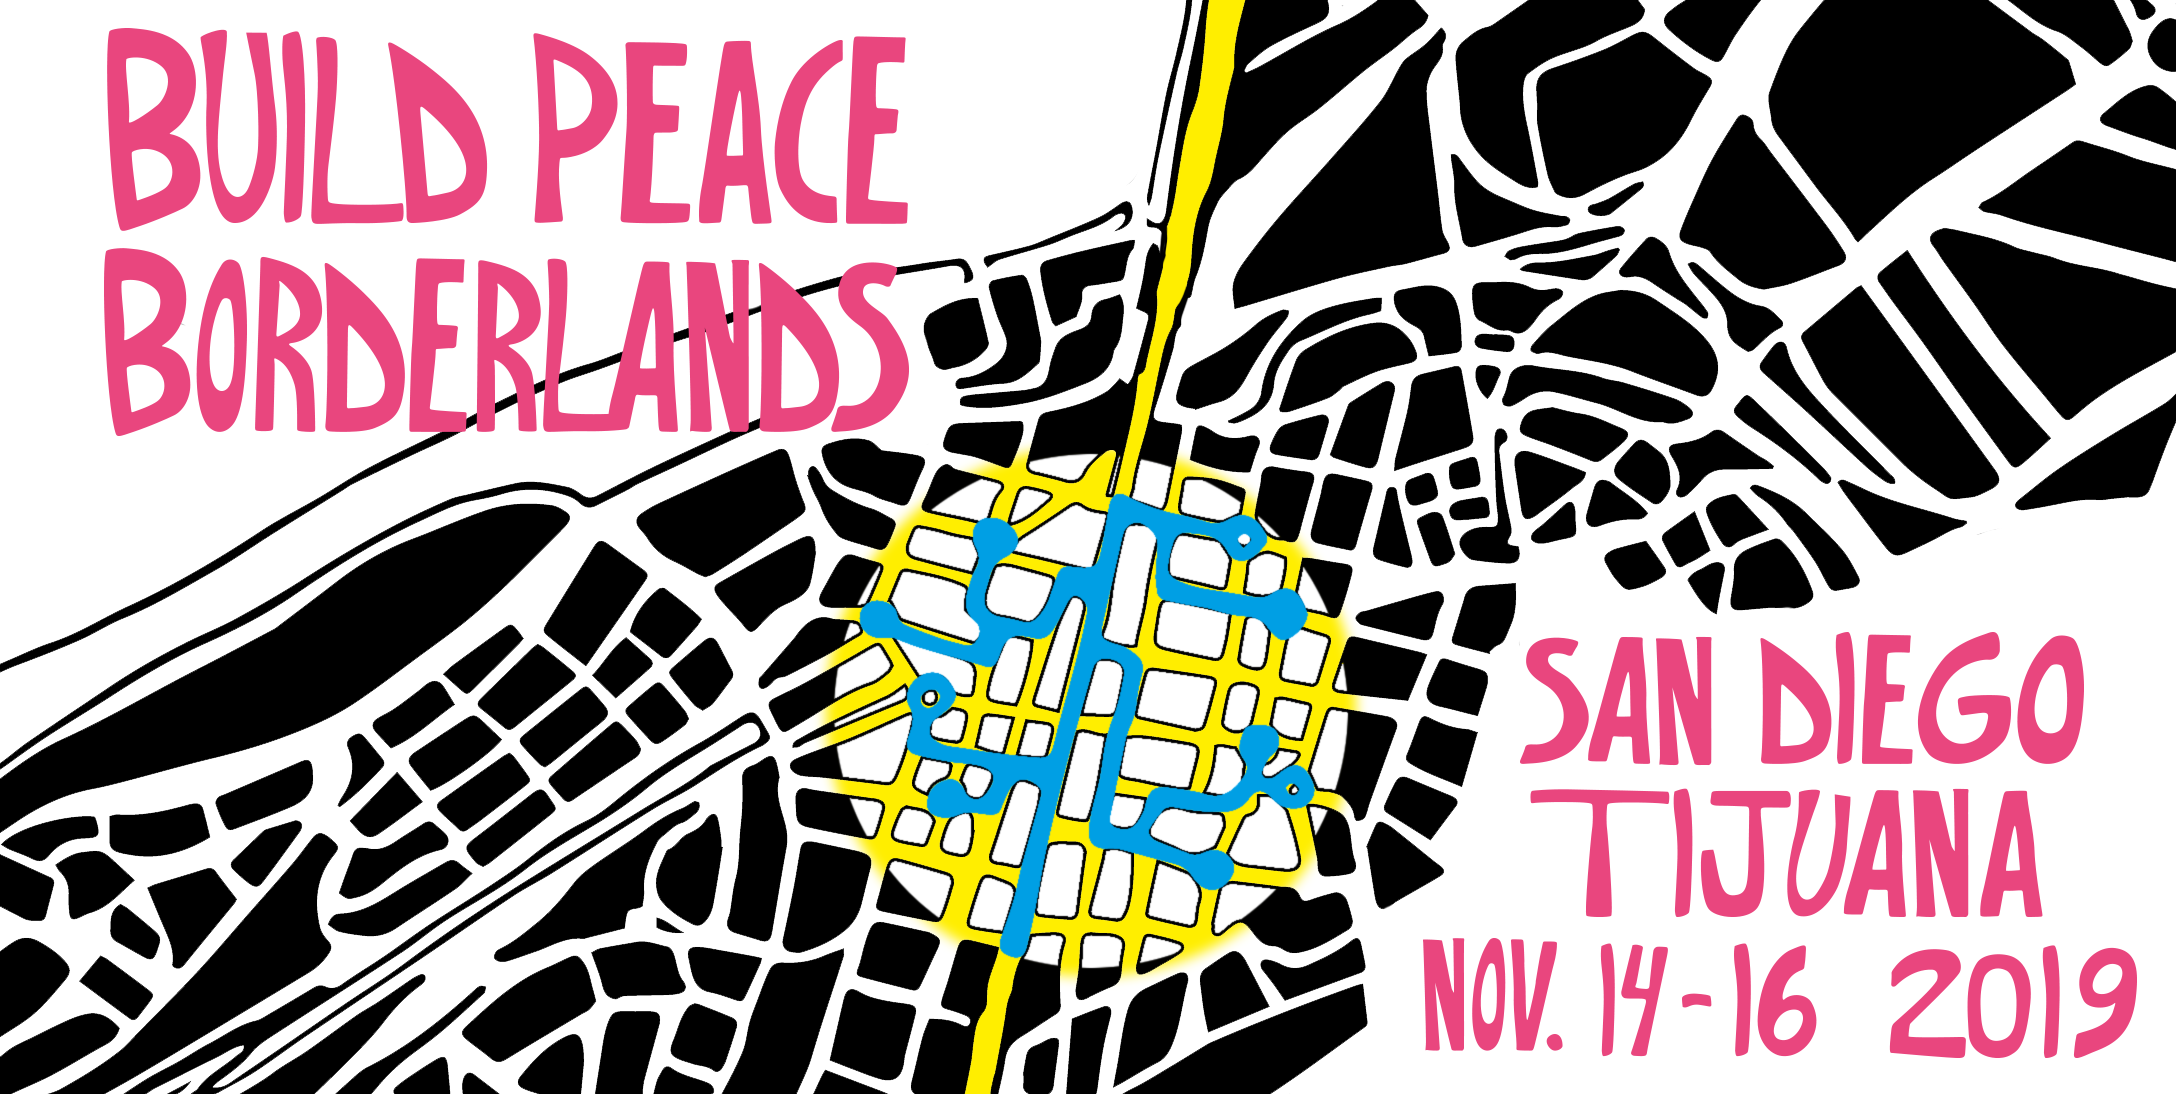 Build Peace Borderlands San Diego Tijuana November 14-16